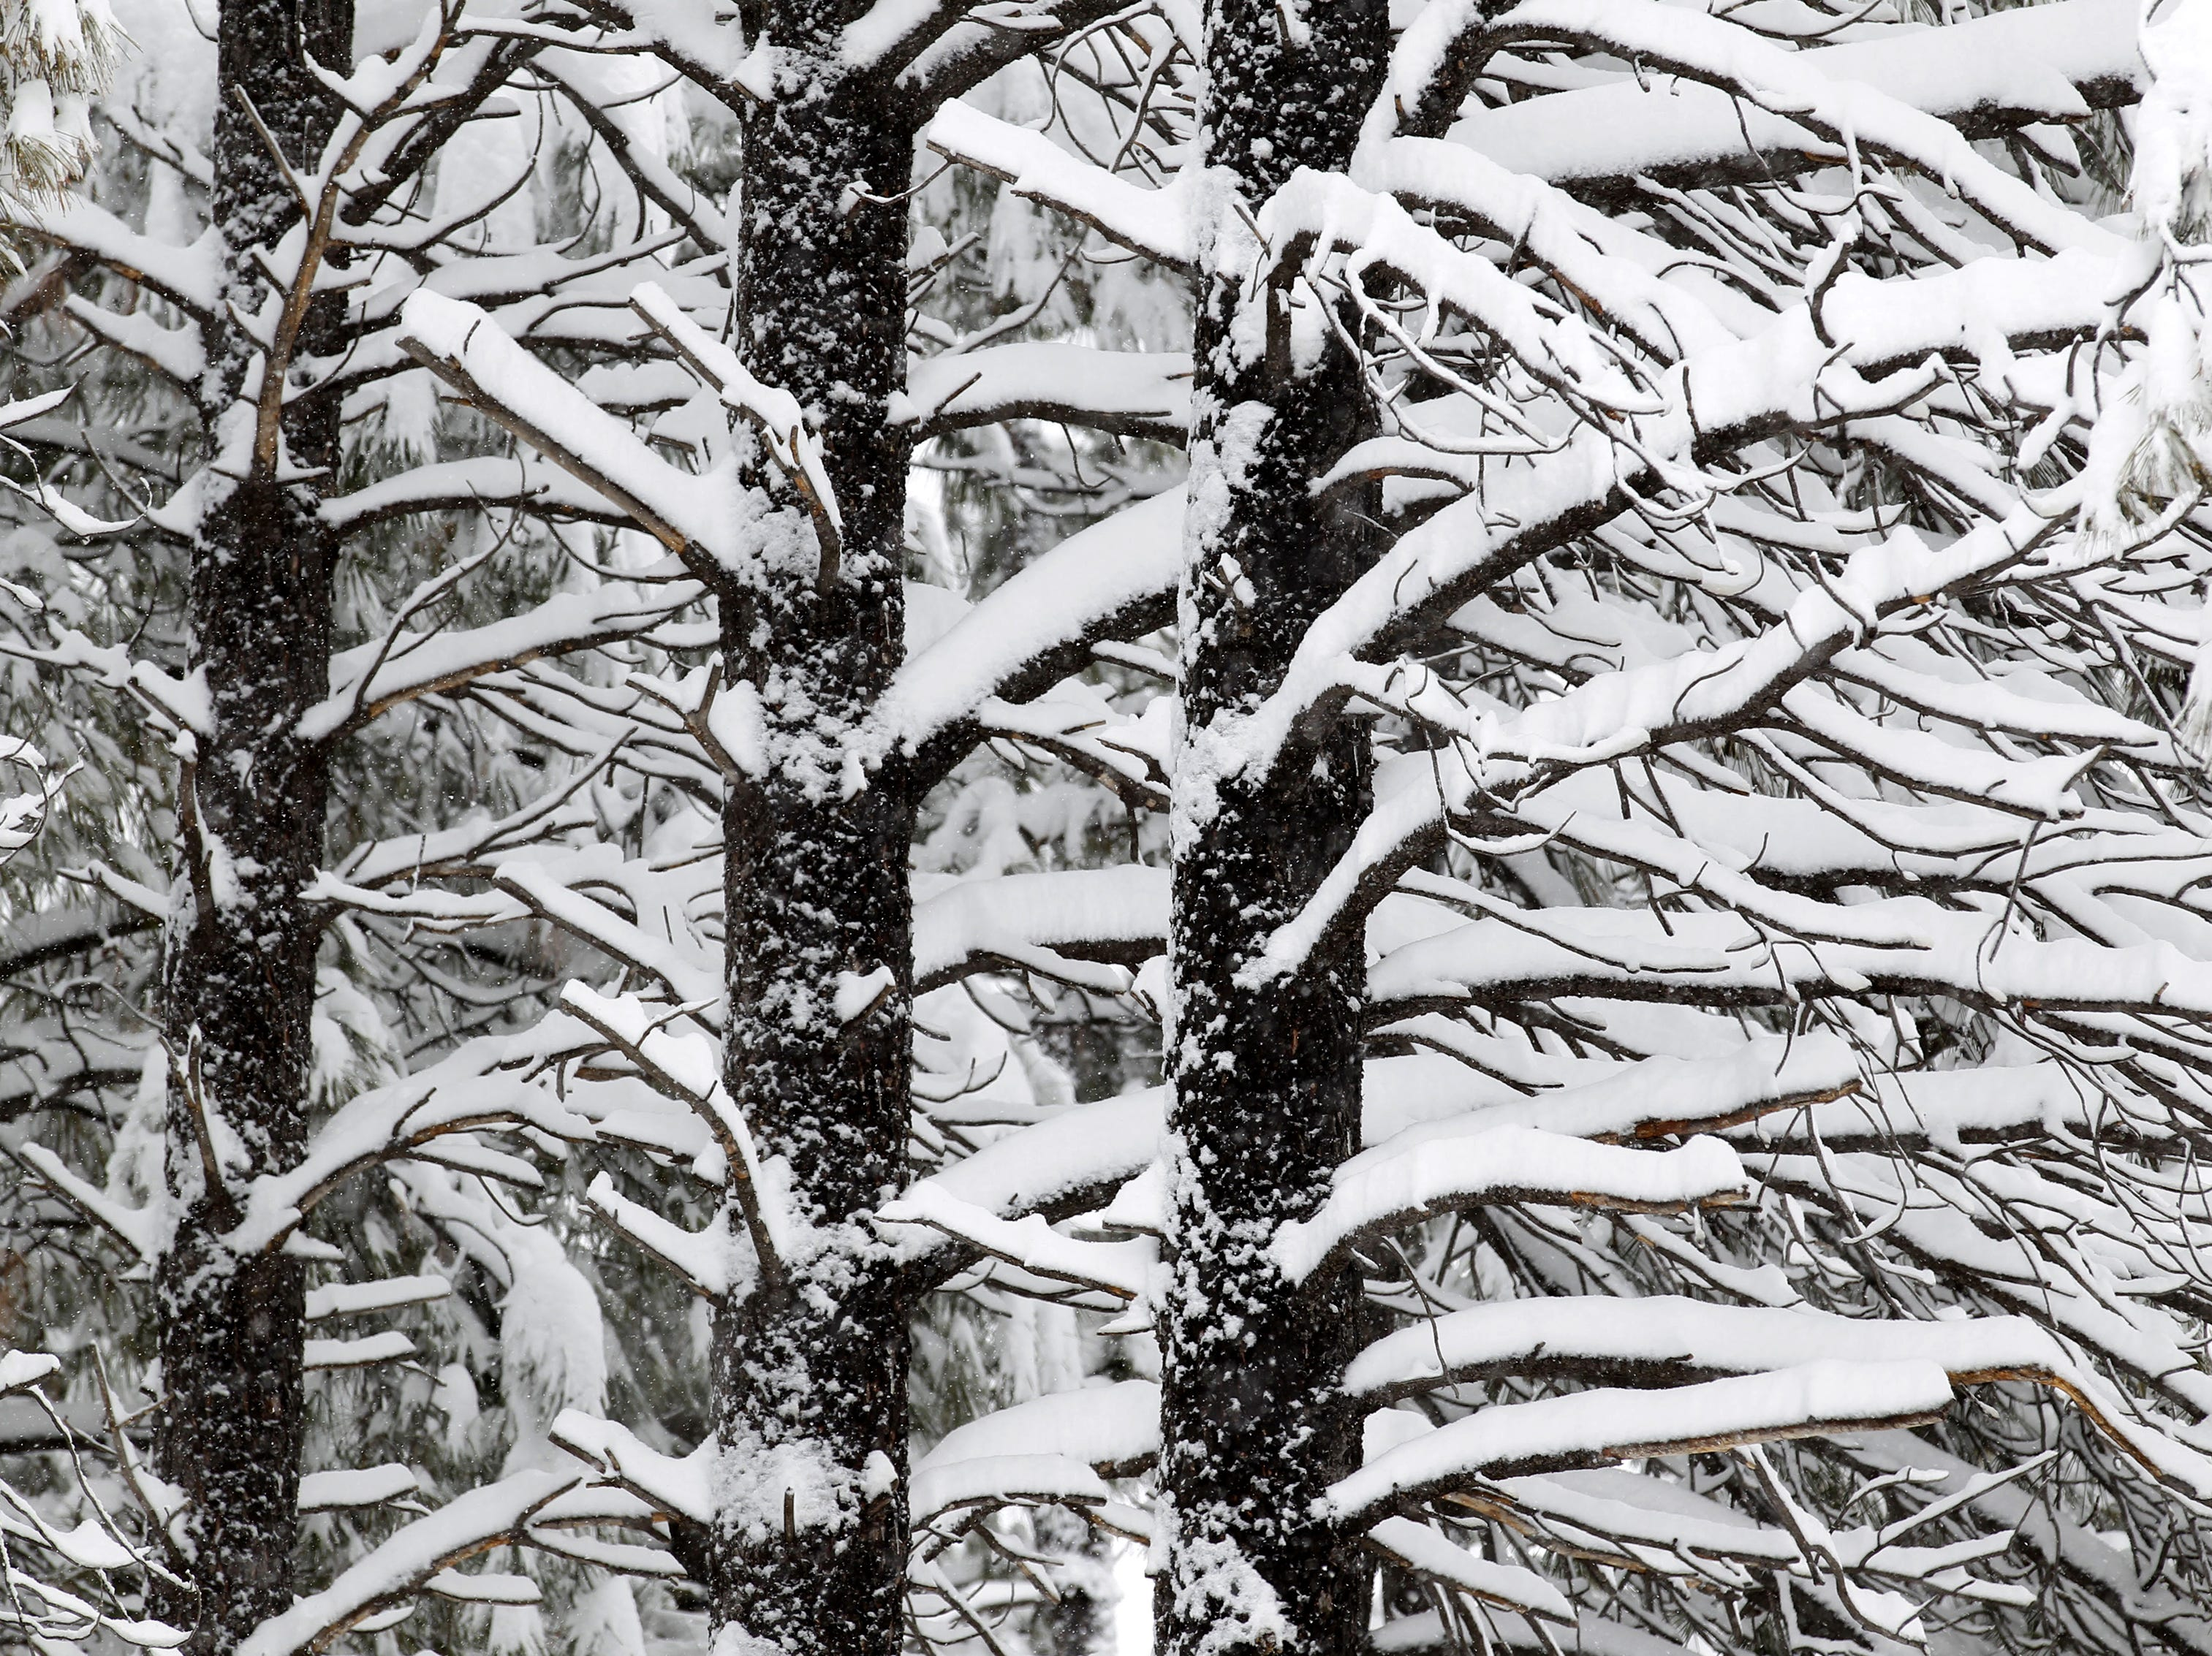 Pine trees are weighted down with heavy snow as a winter storm hits Flagstaff, AZ.